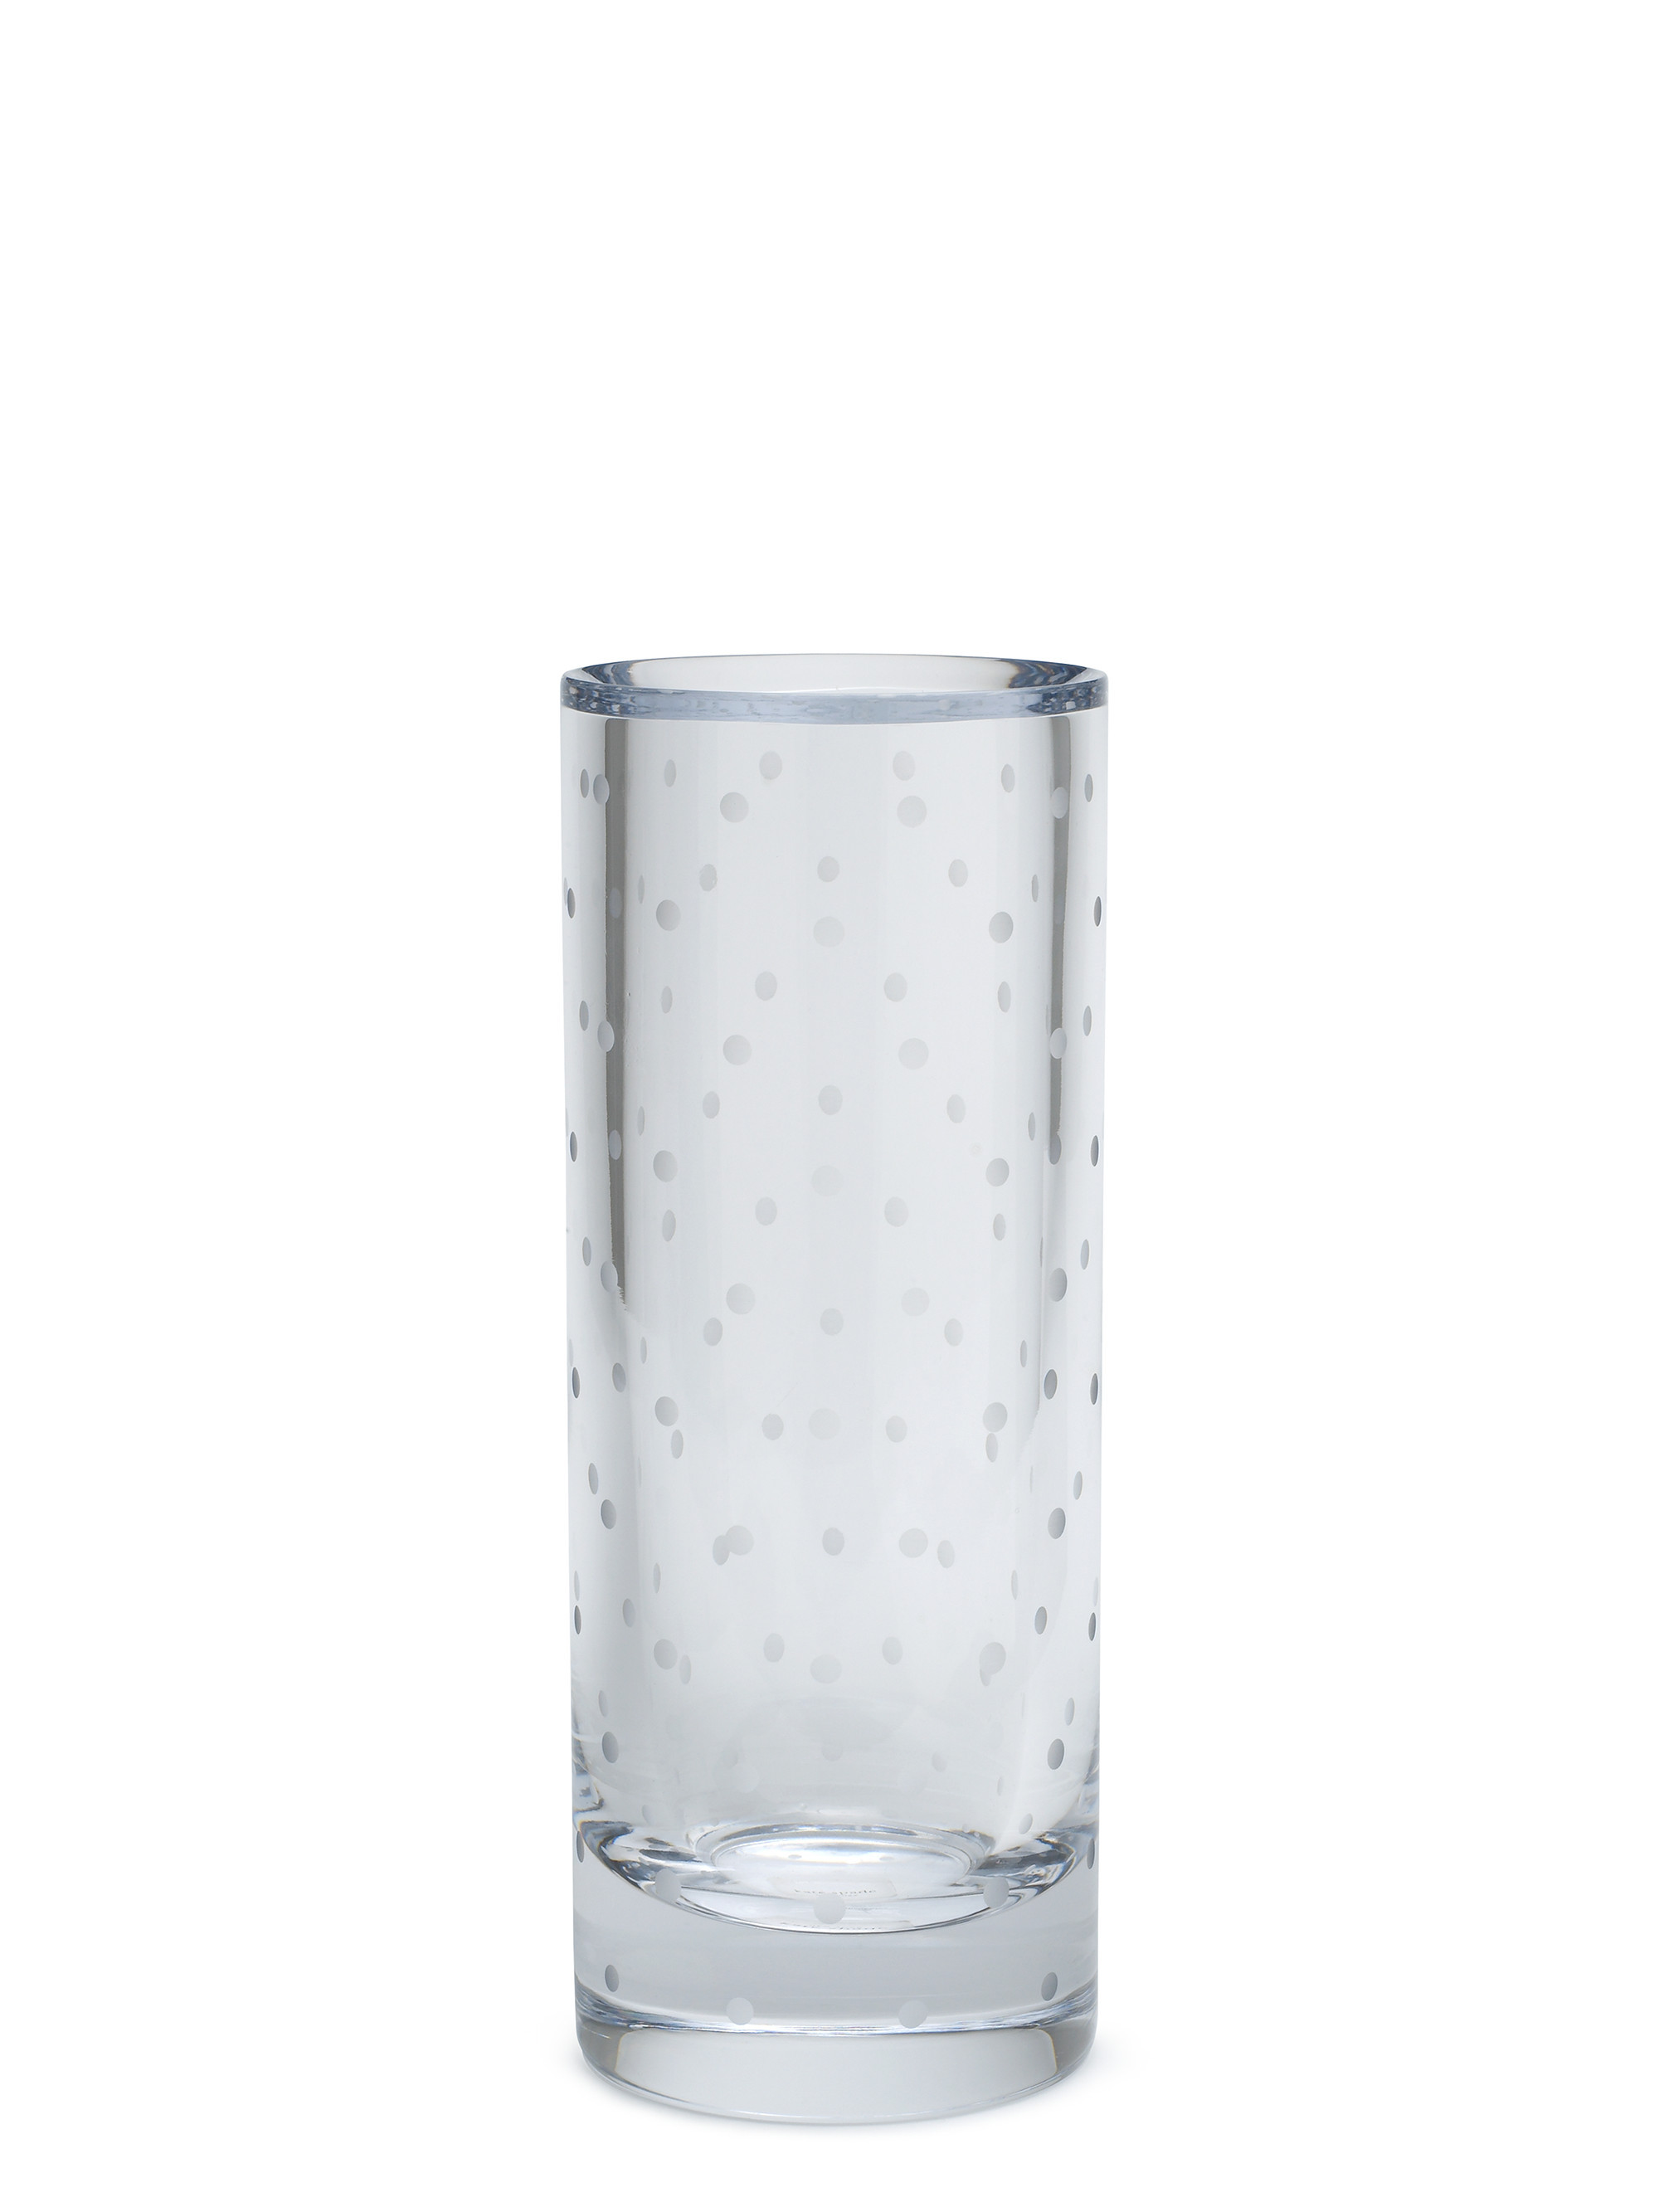 kate spade dandy lane vase of kate spade crystal vases vase and cellar image avorcor com throughout vases design pictures beautiful images kate spade the